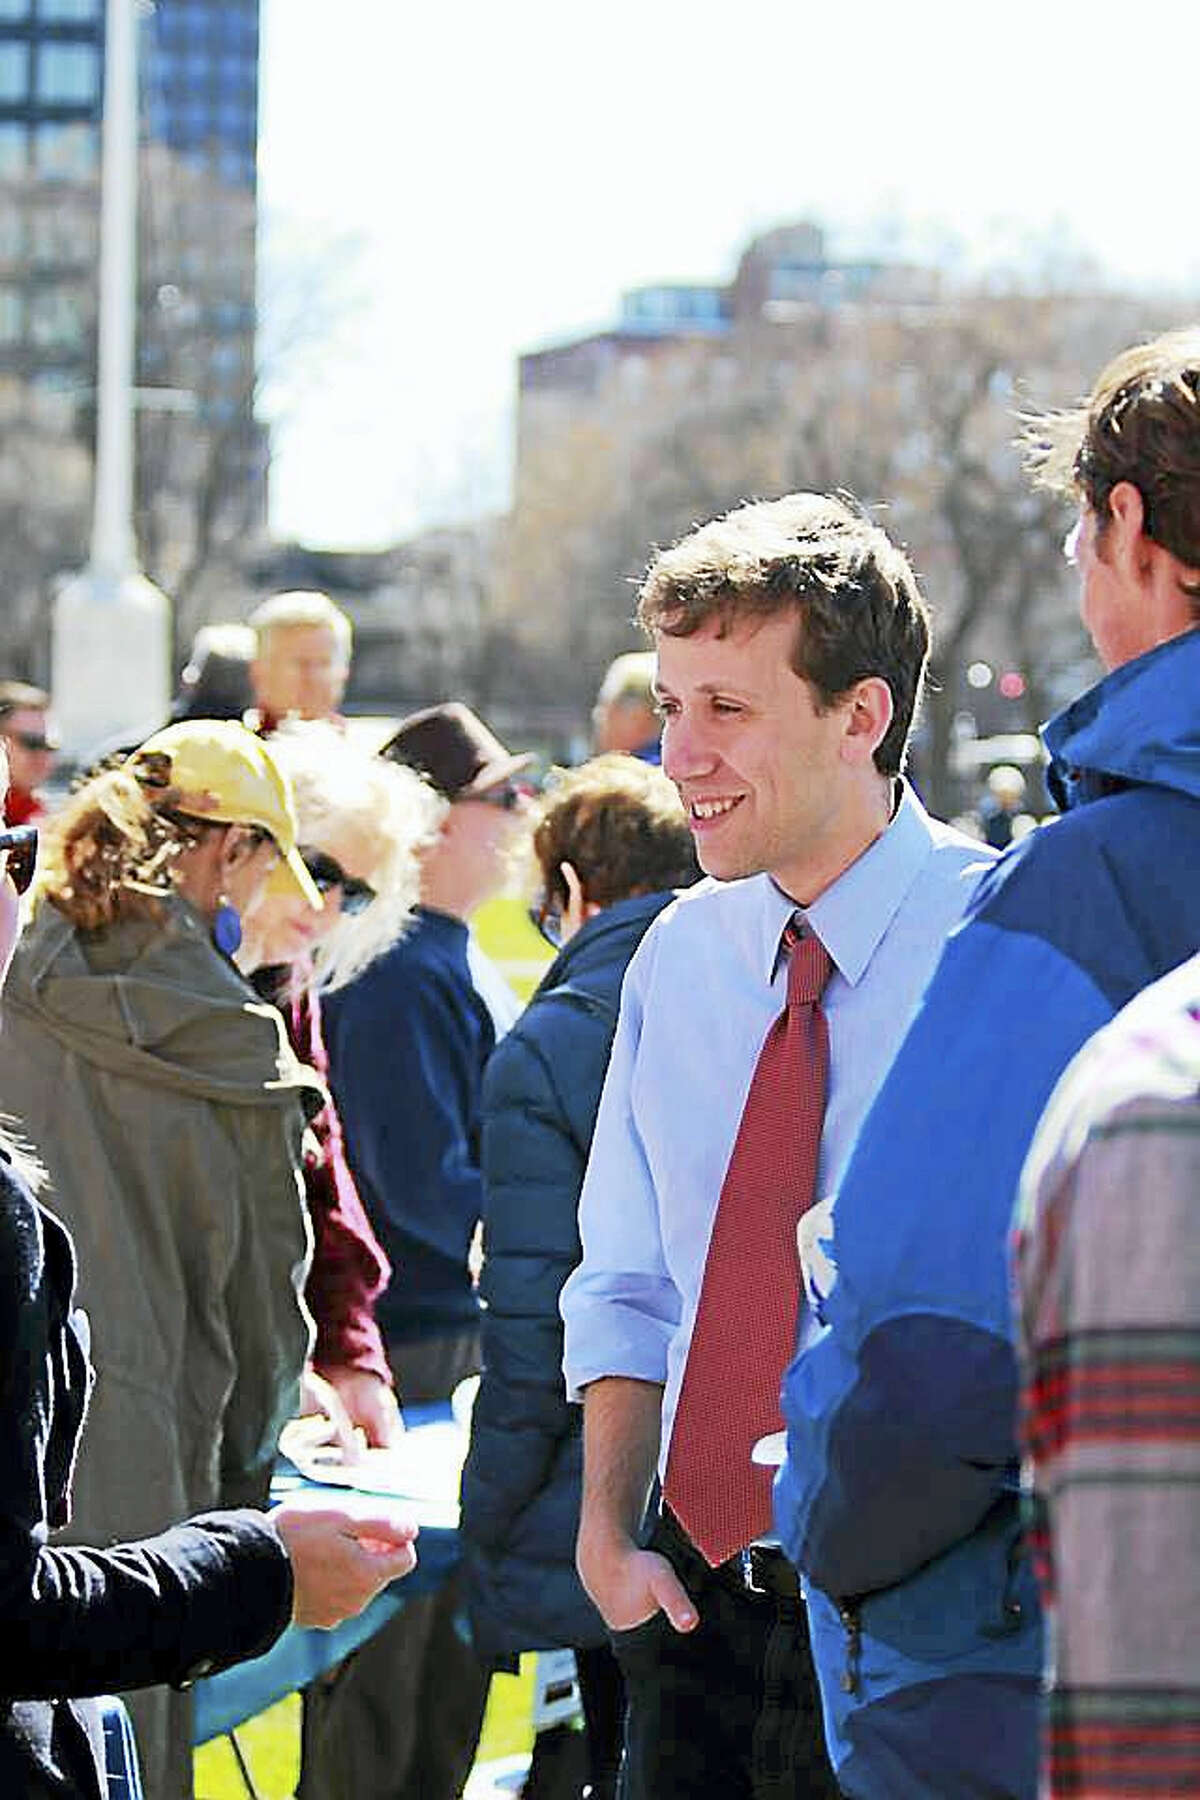 State Rep. Matthew Lesser, D-Middletown, greets constituents in New Haven recently. He's formed an exploratory committee for a possible run for secretary of state and just released his July 10 filings with the State Elections Enforcement Commission.